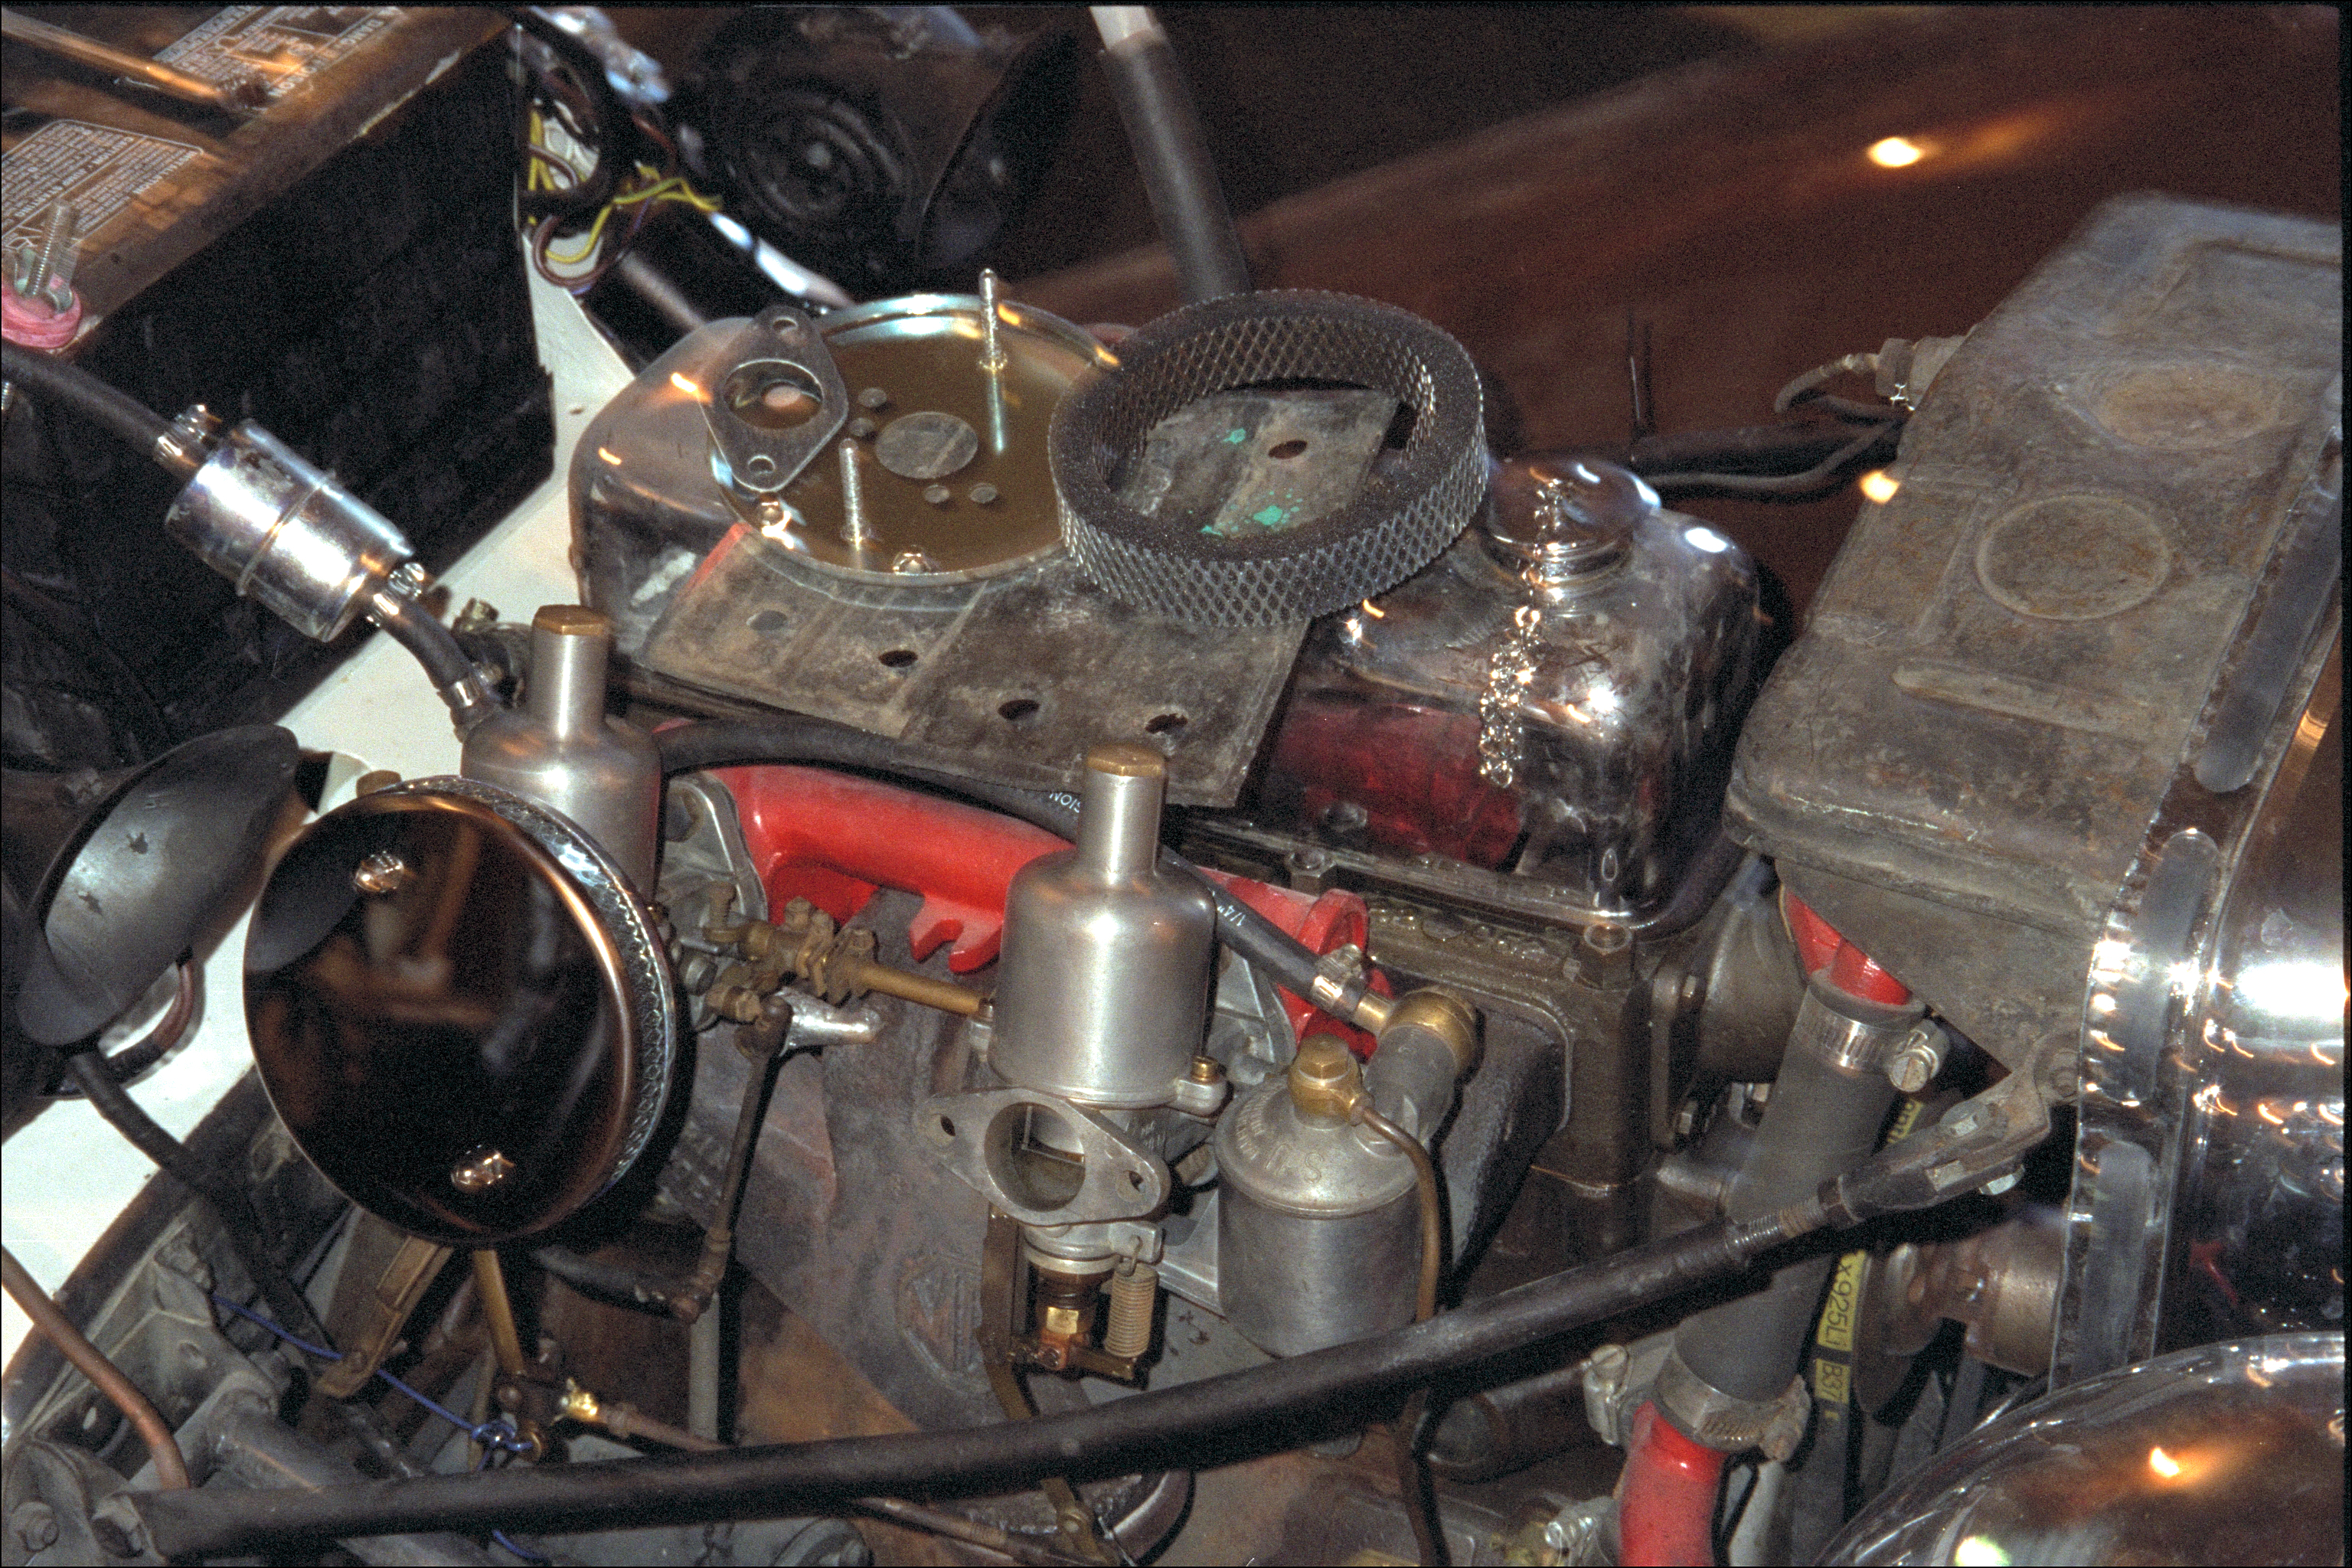 Installing carb mounted air filters